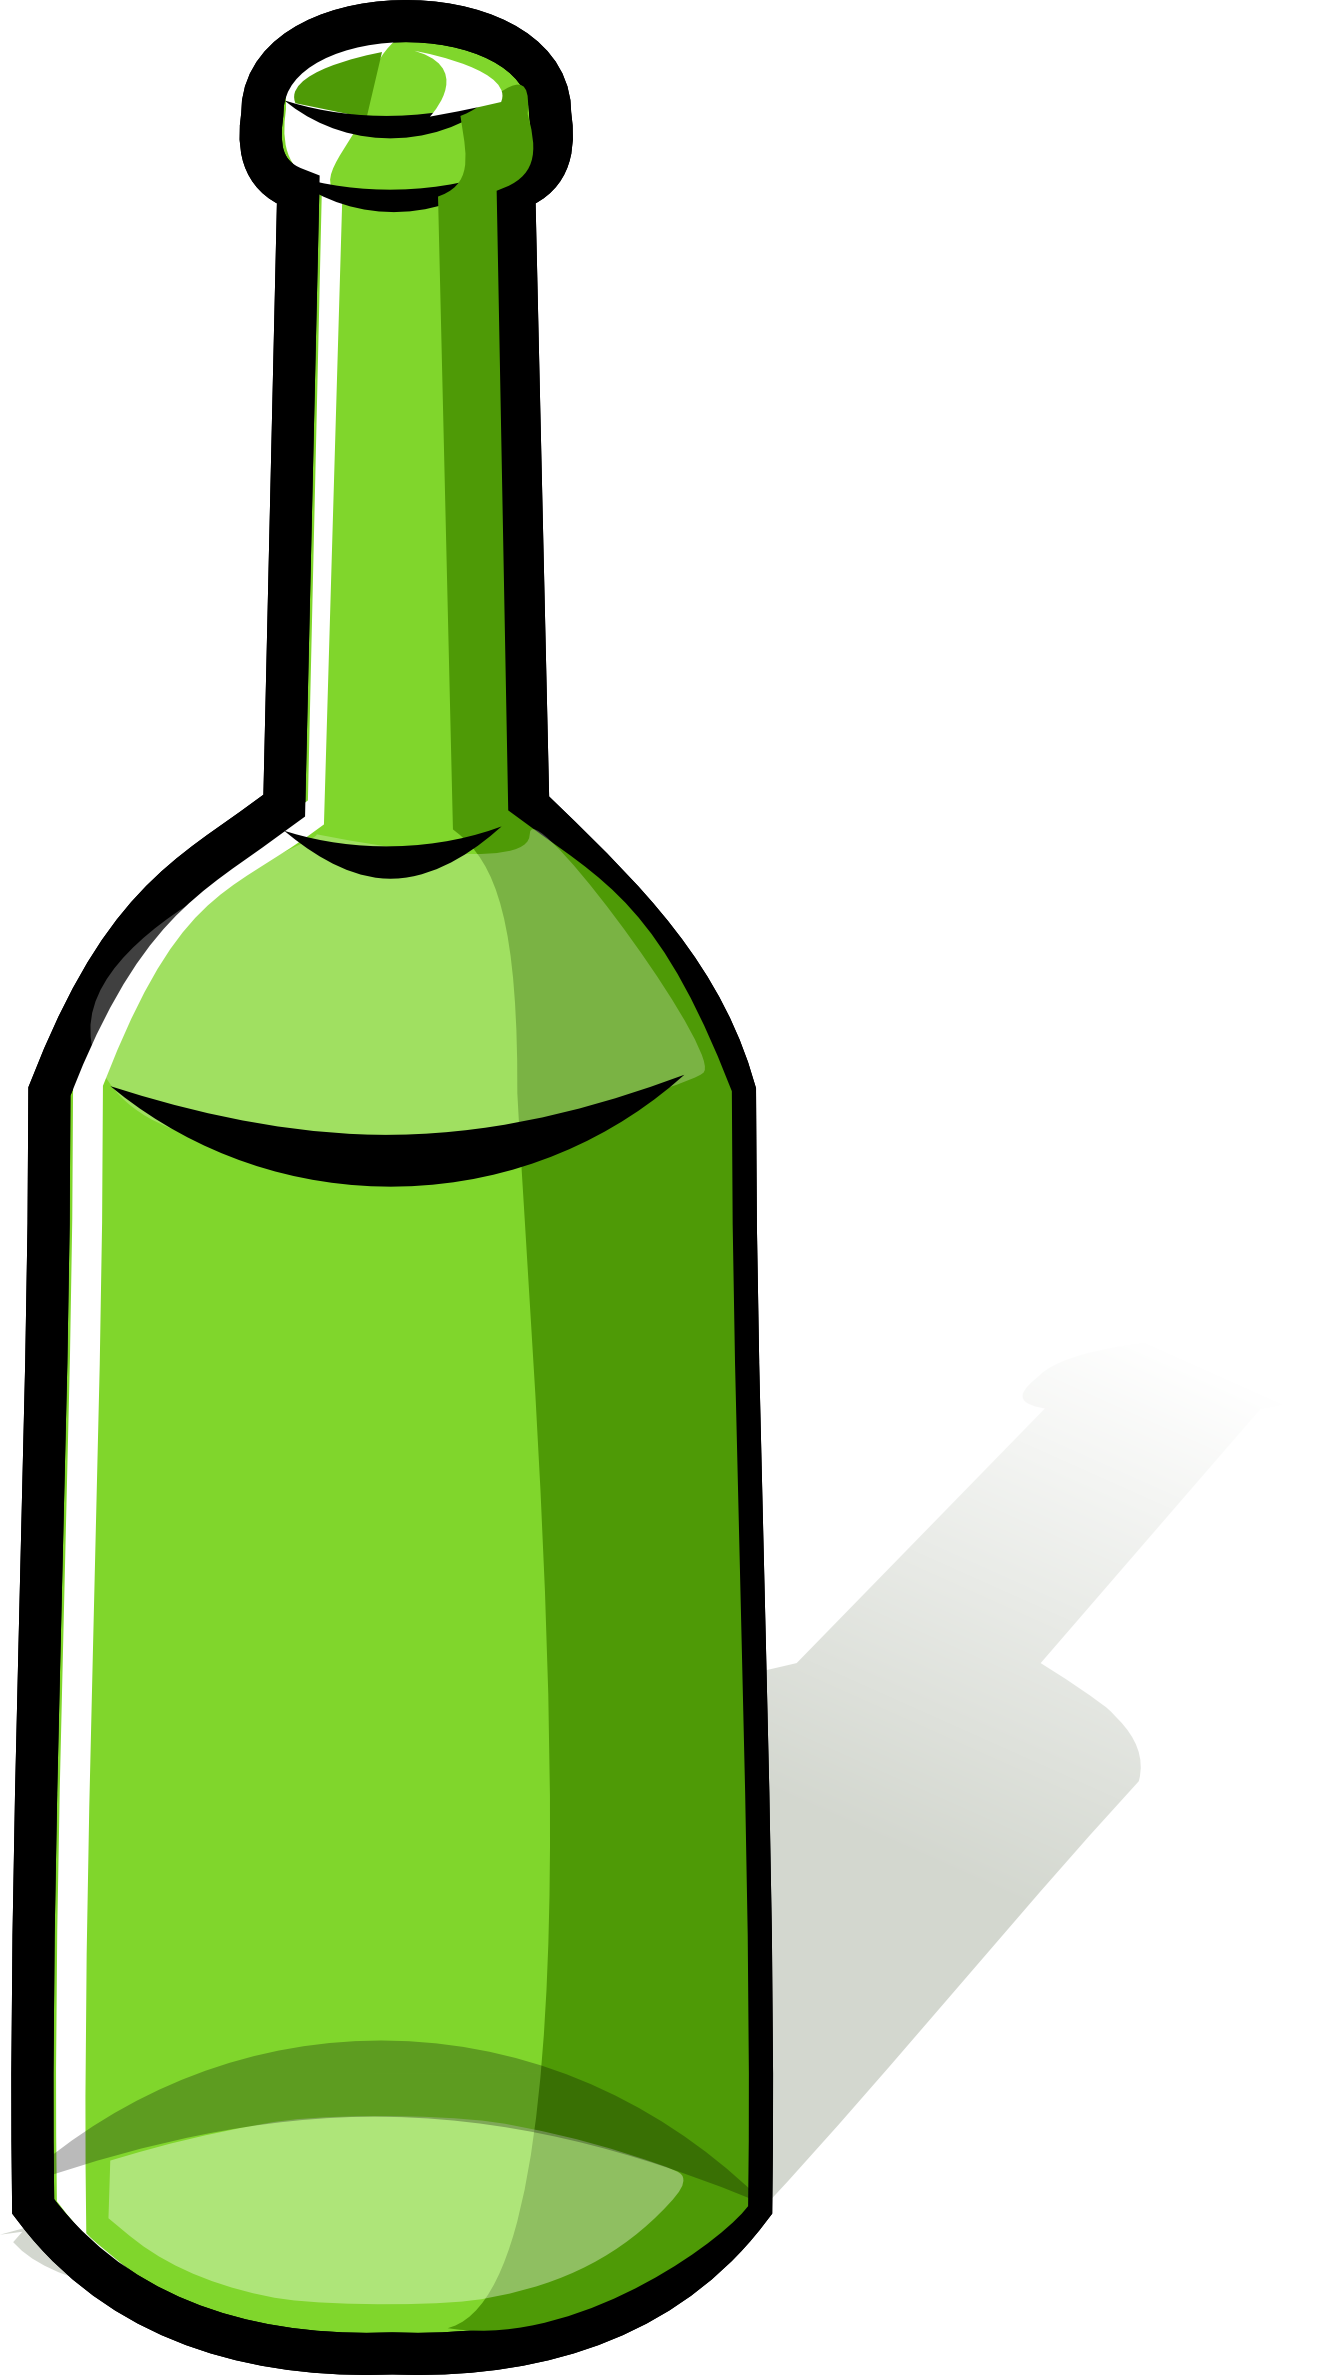 collection of clipart. Beer bottle clip art png